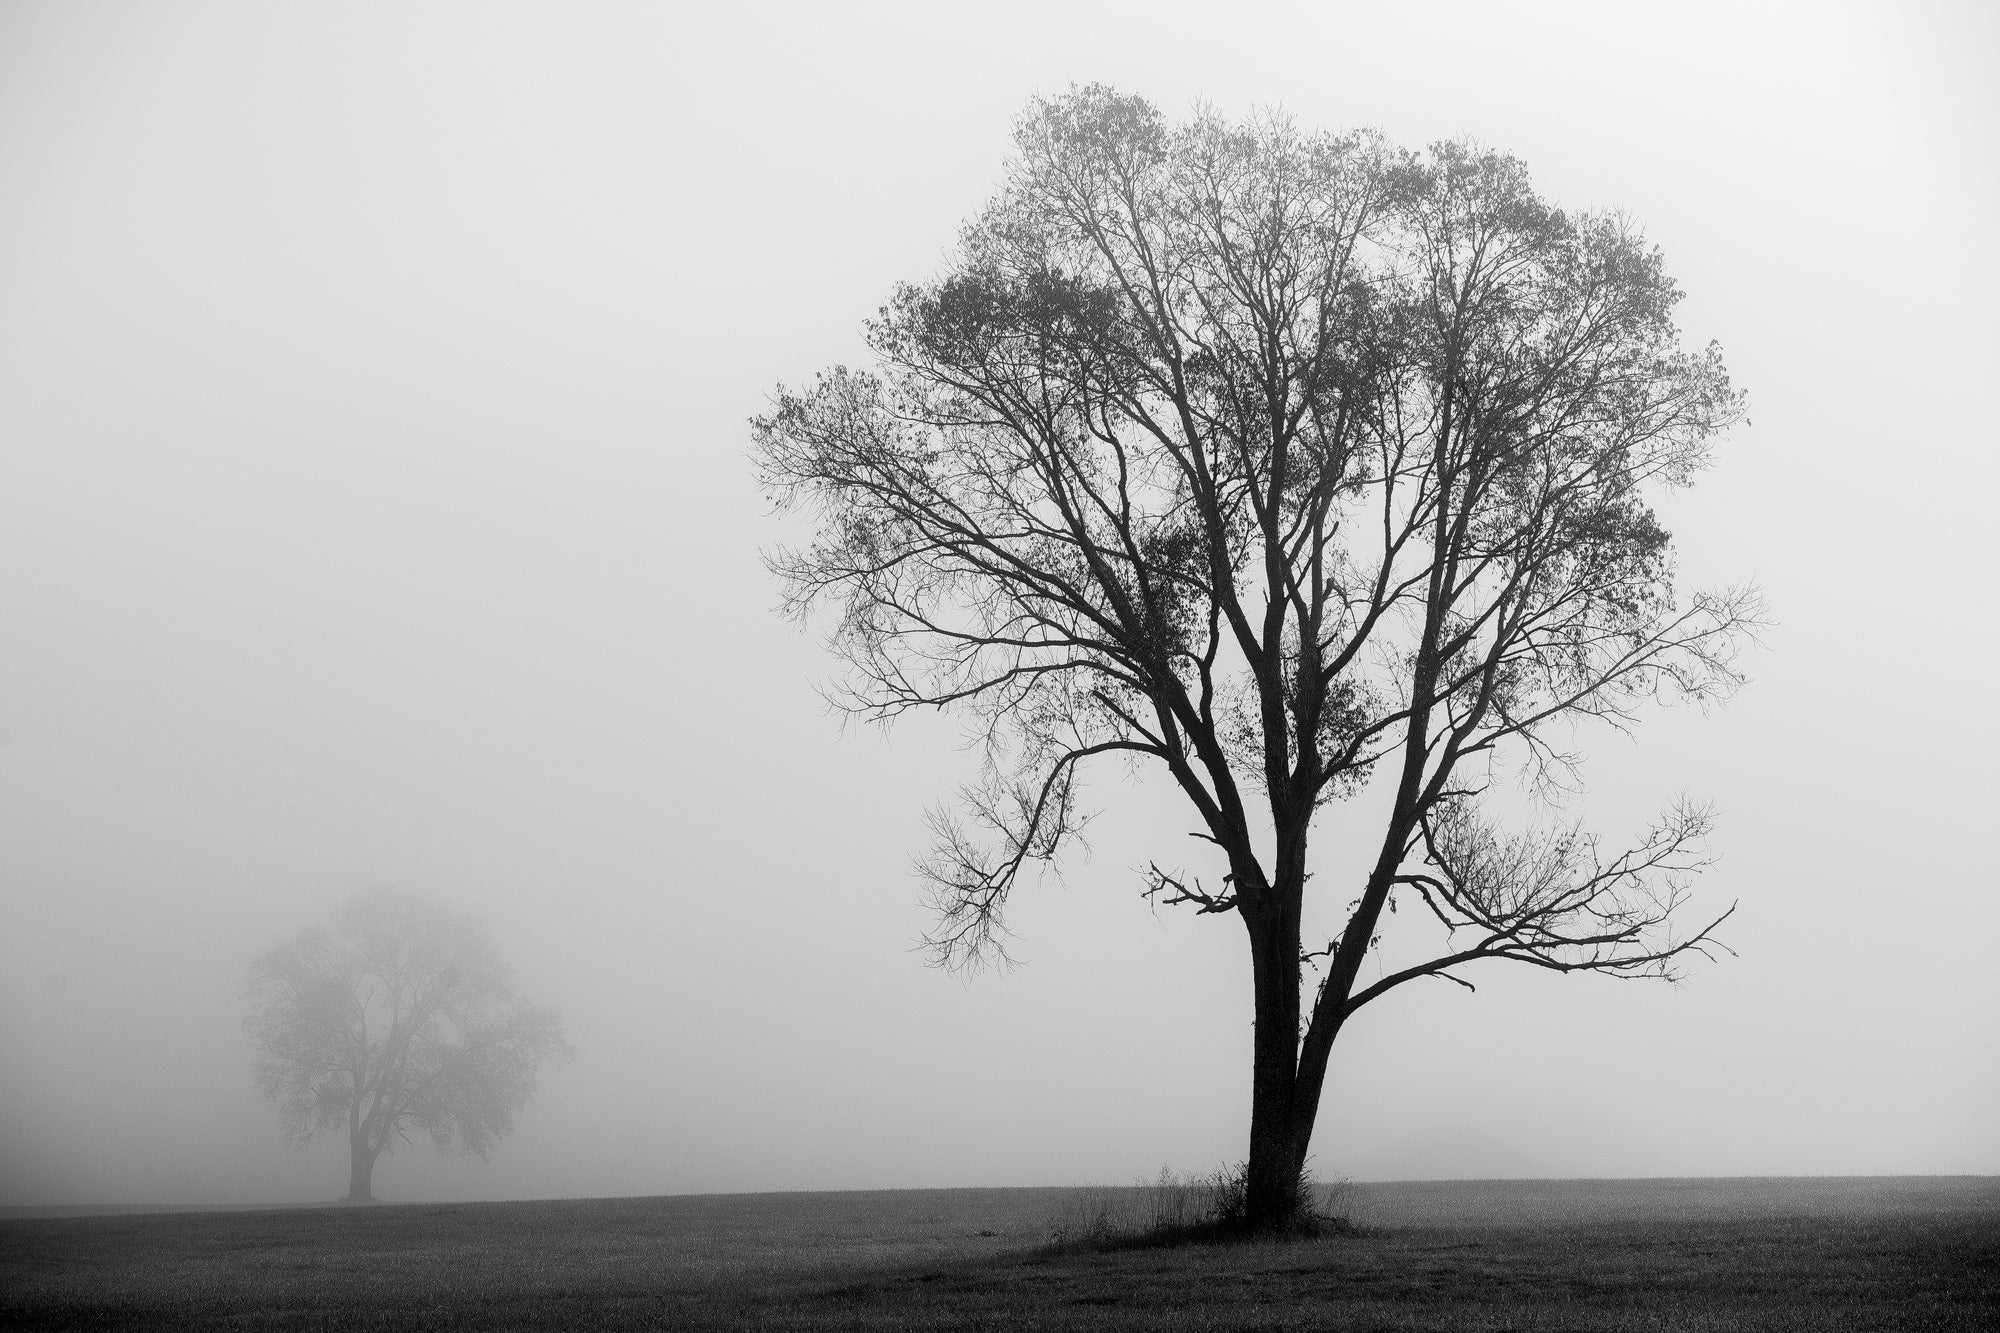 Two trees in a foggy landscape